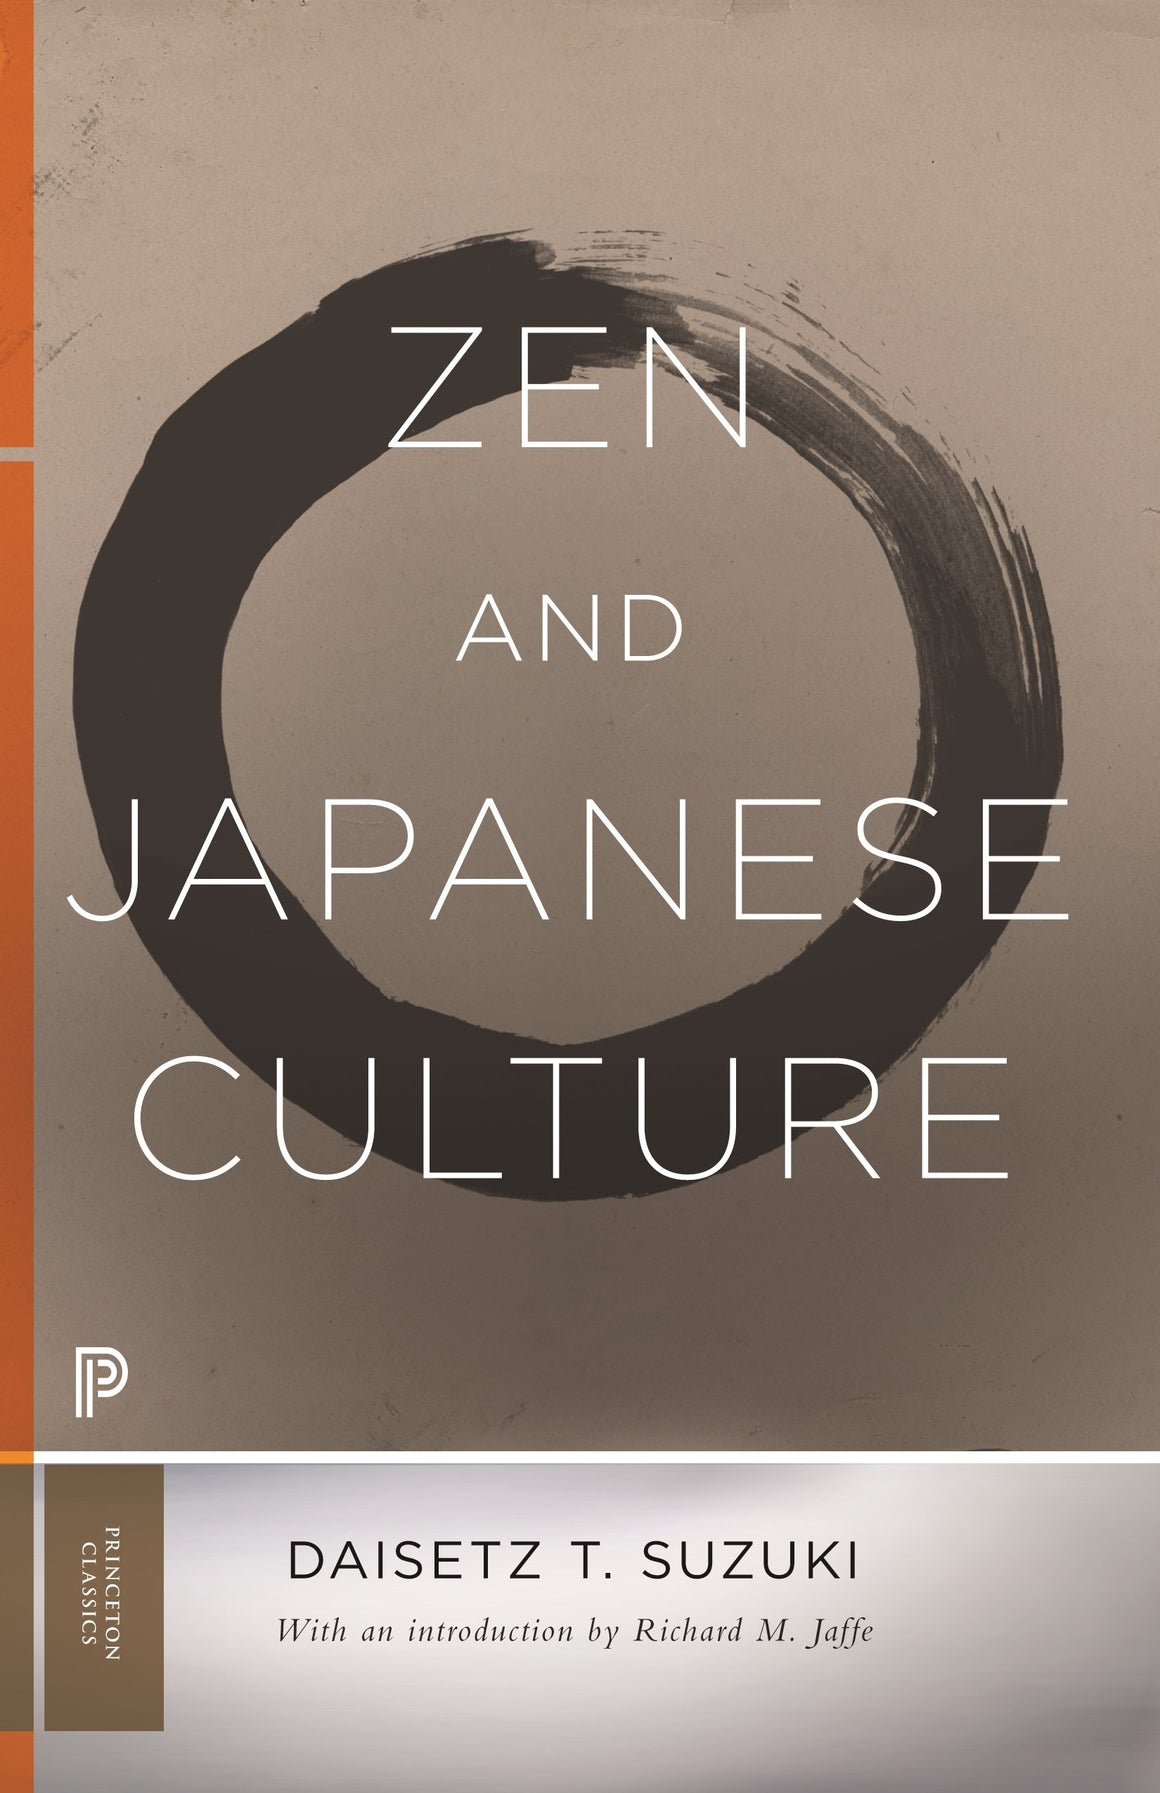 Zen And Japanese Culture by Daisetz Teitaro Suzuki